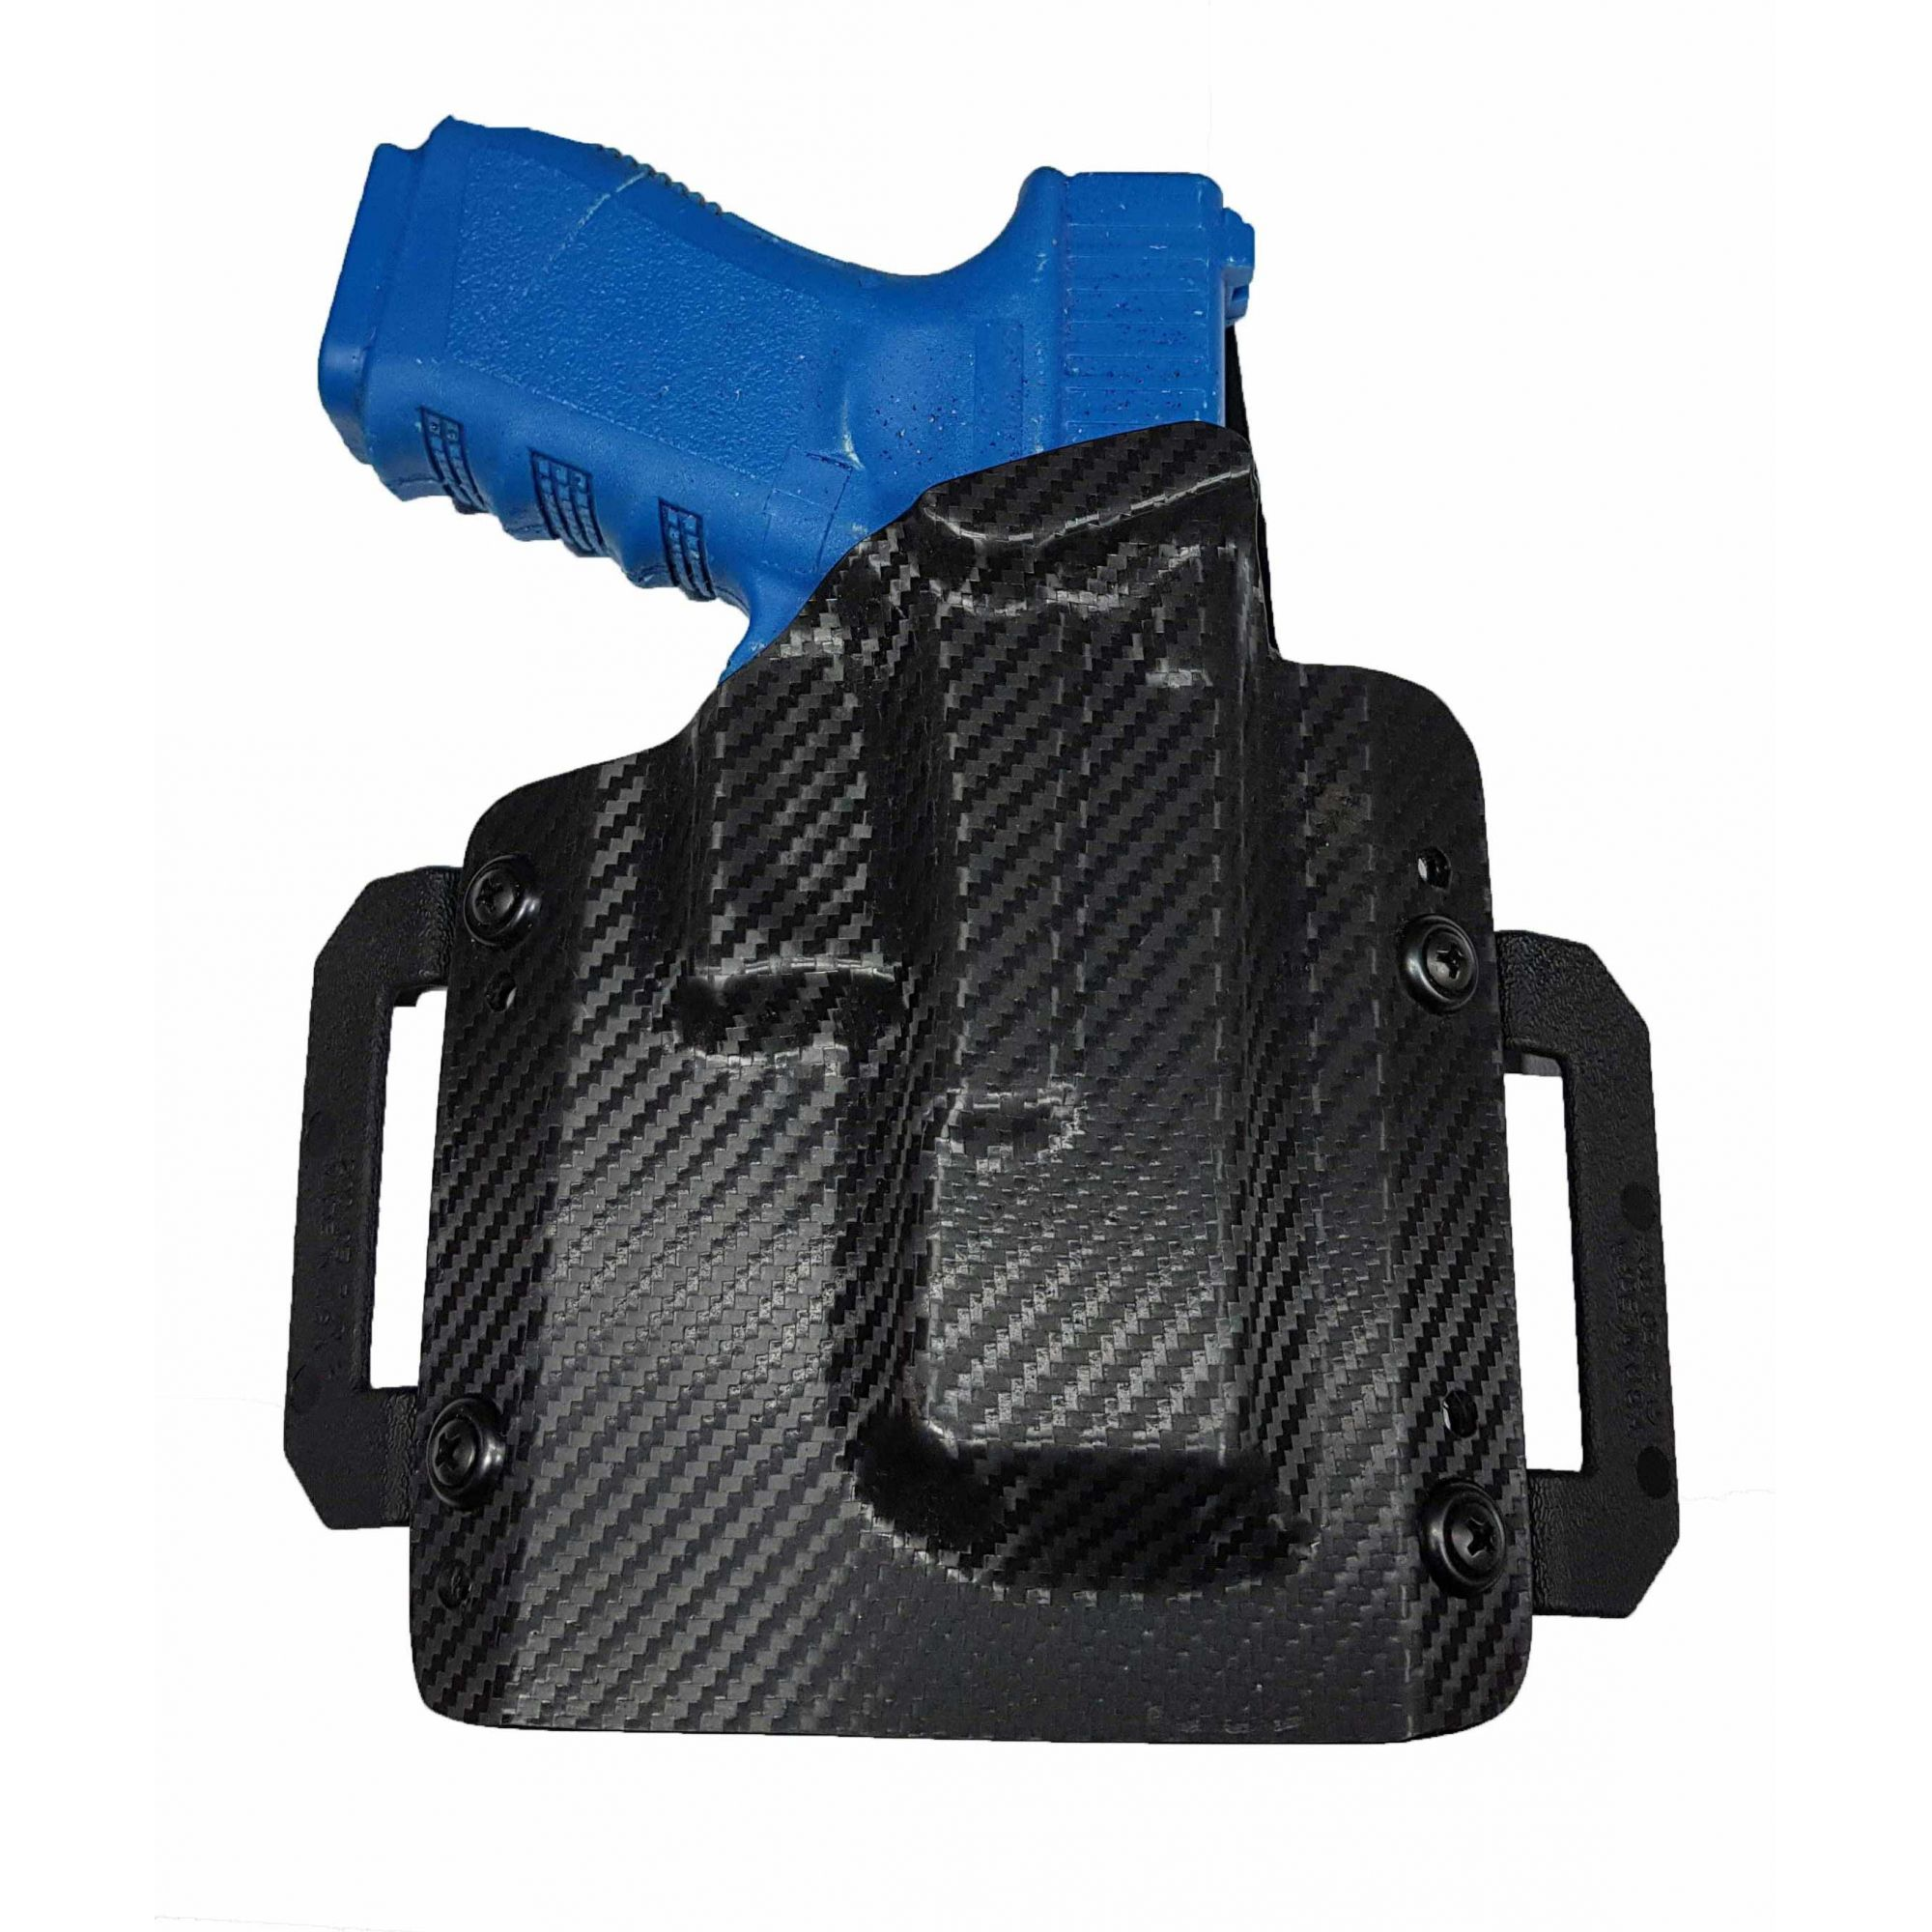 Coldre Kydex Externo PT 58 HC PLUS